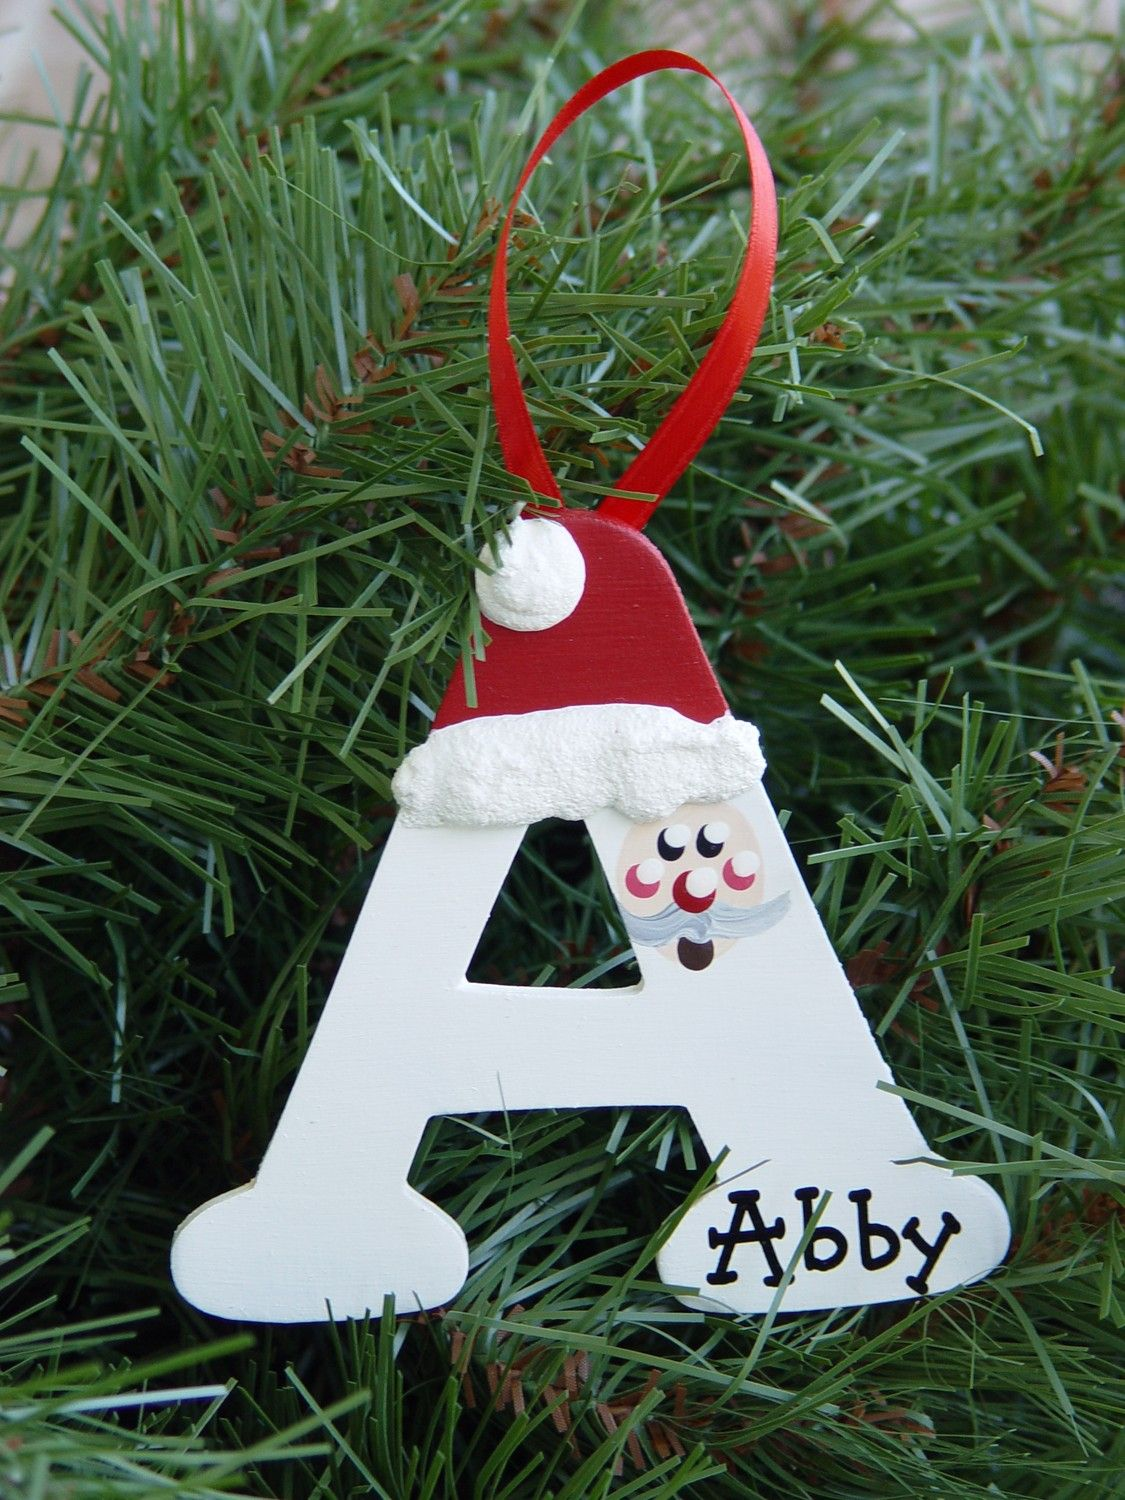 Personalized Santa Letter Ornaments Etsy Christmas Ornament Crafts Personalized Christmas Ornaments Christmas Crafts